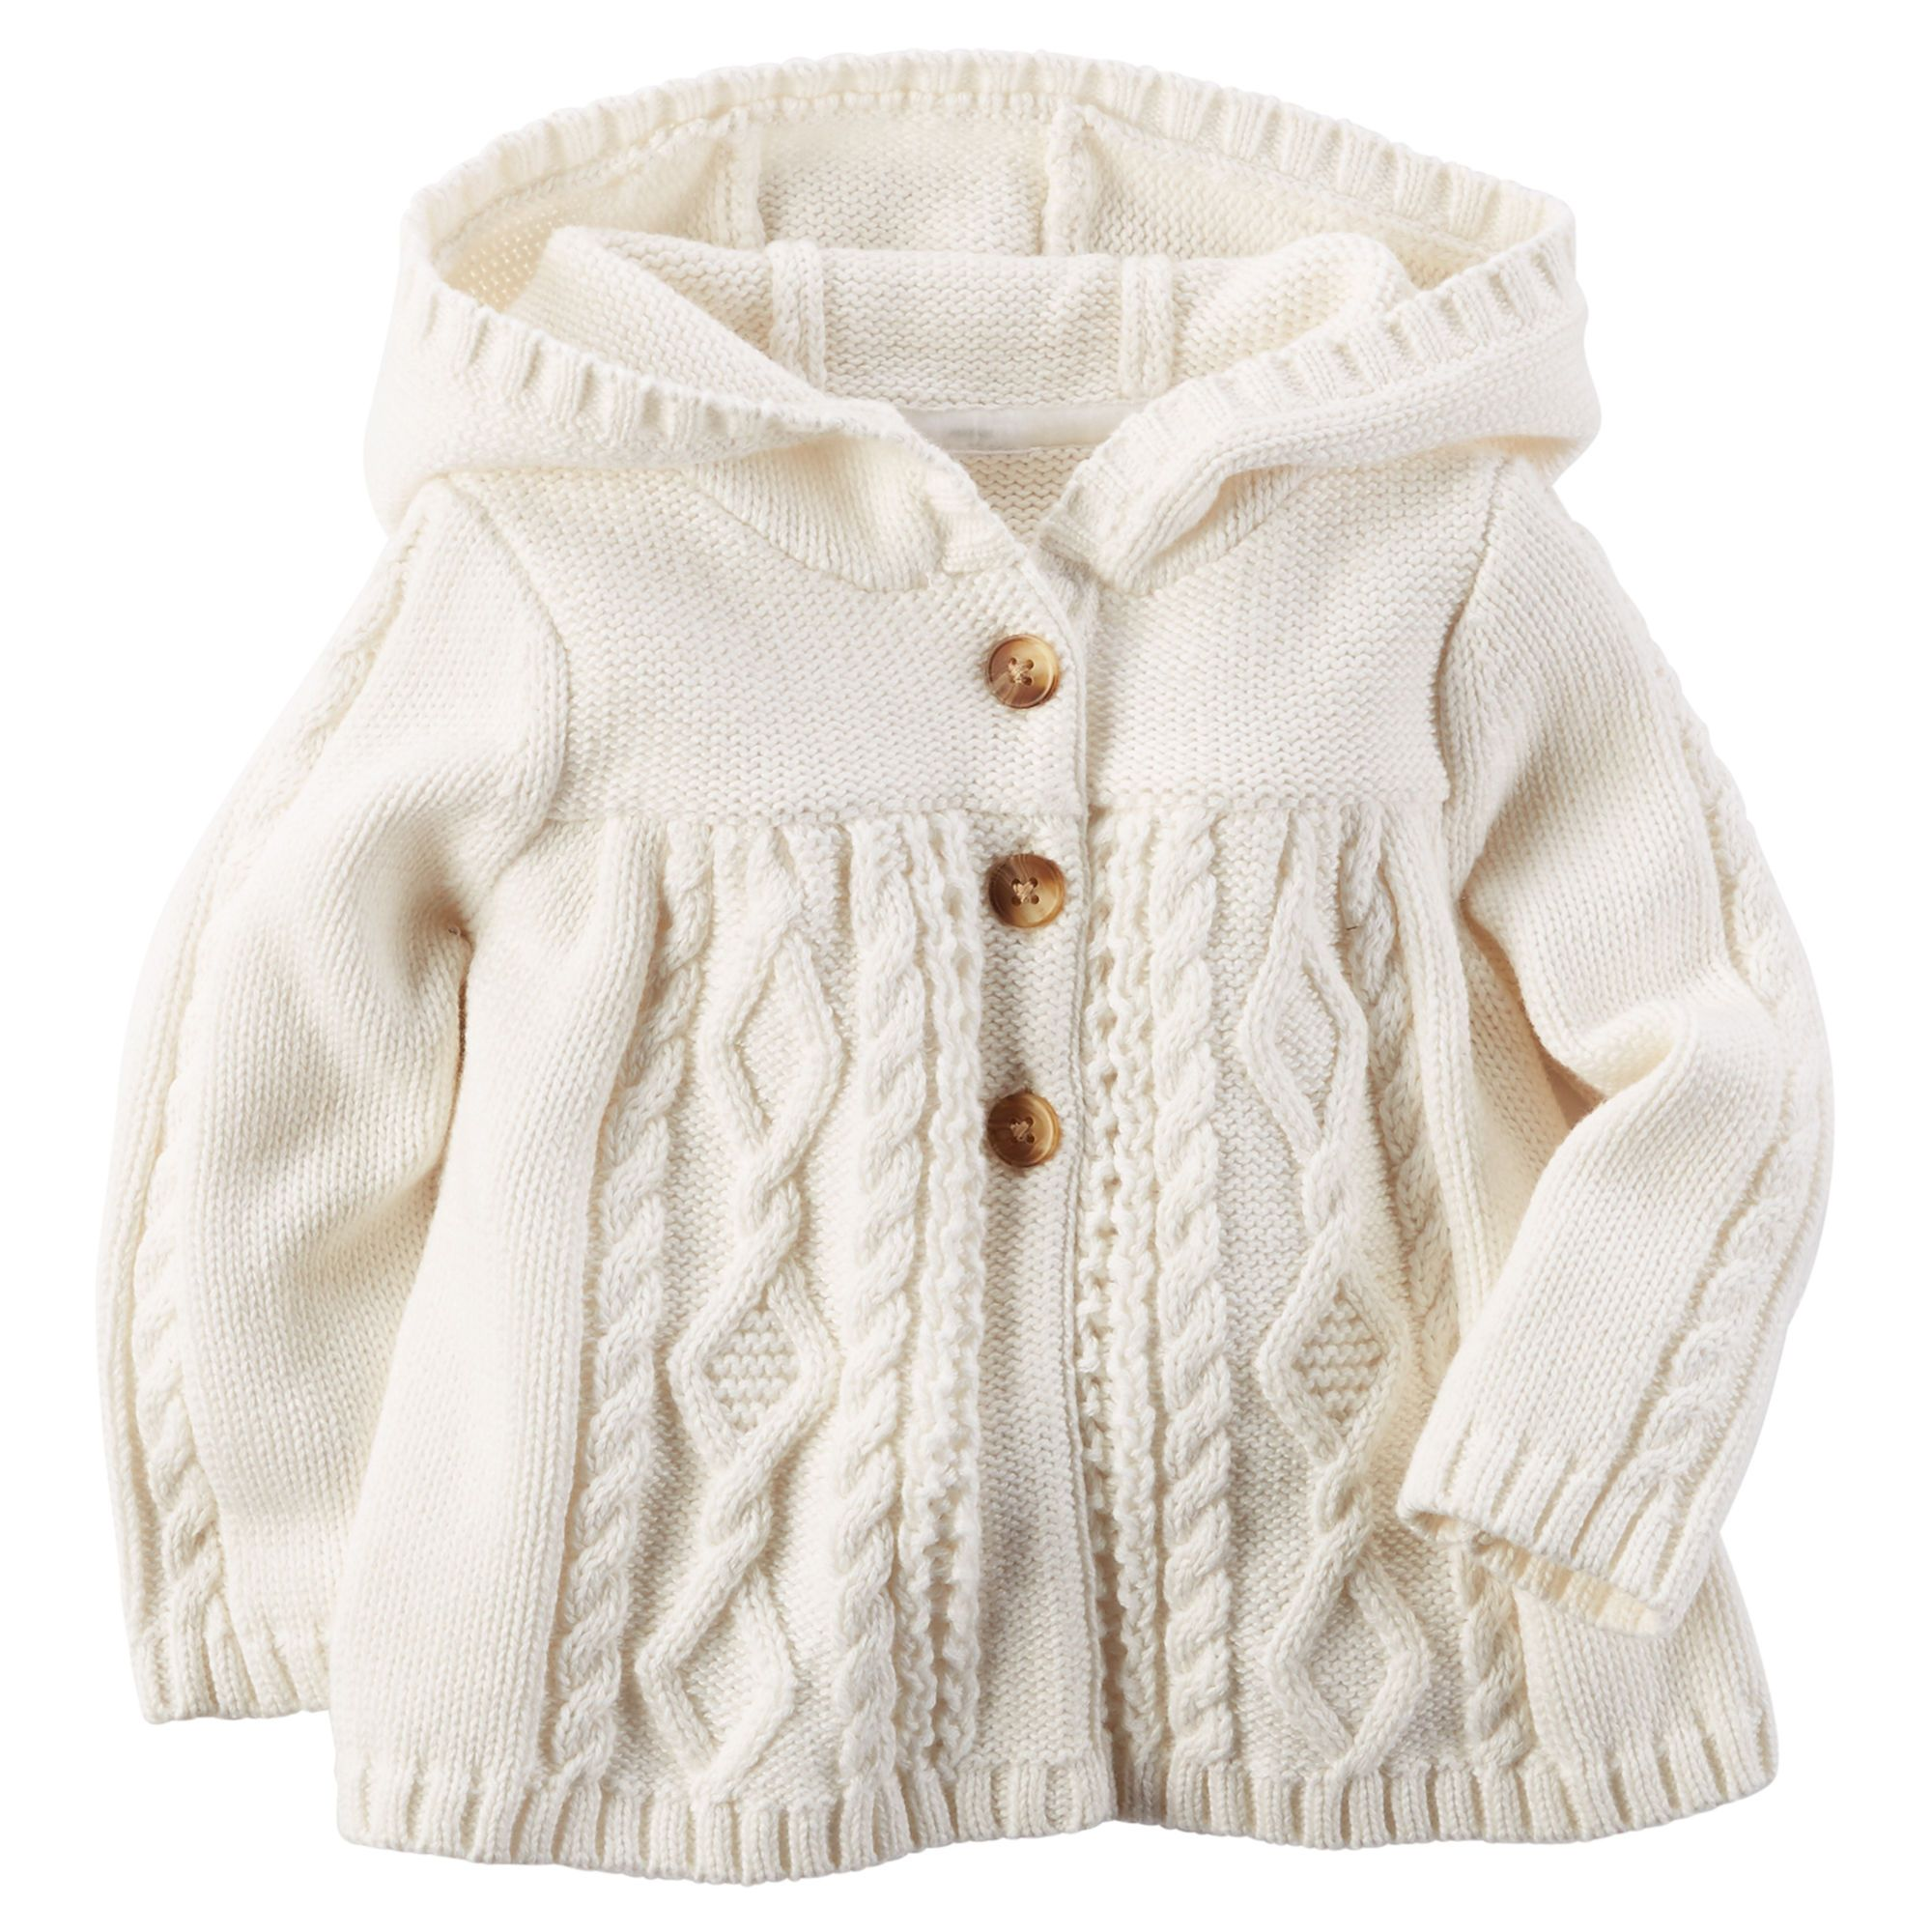 Shop for baby hooded sweater online at Target. Free shipping on purchases over $35 and save 5% every day with your Target REDcard.